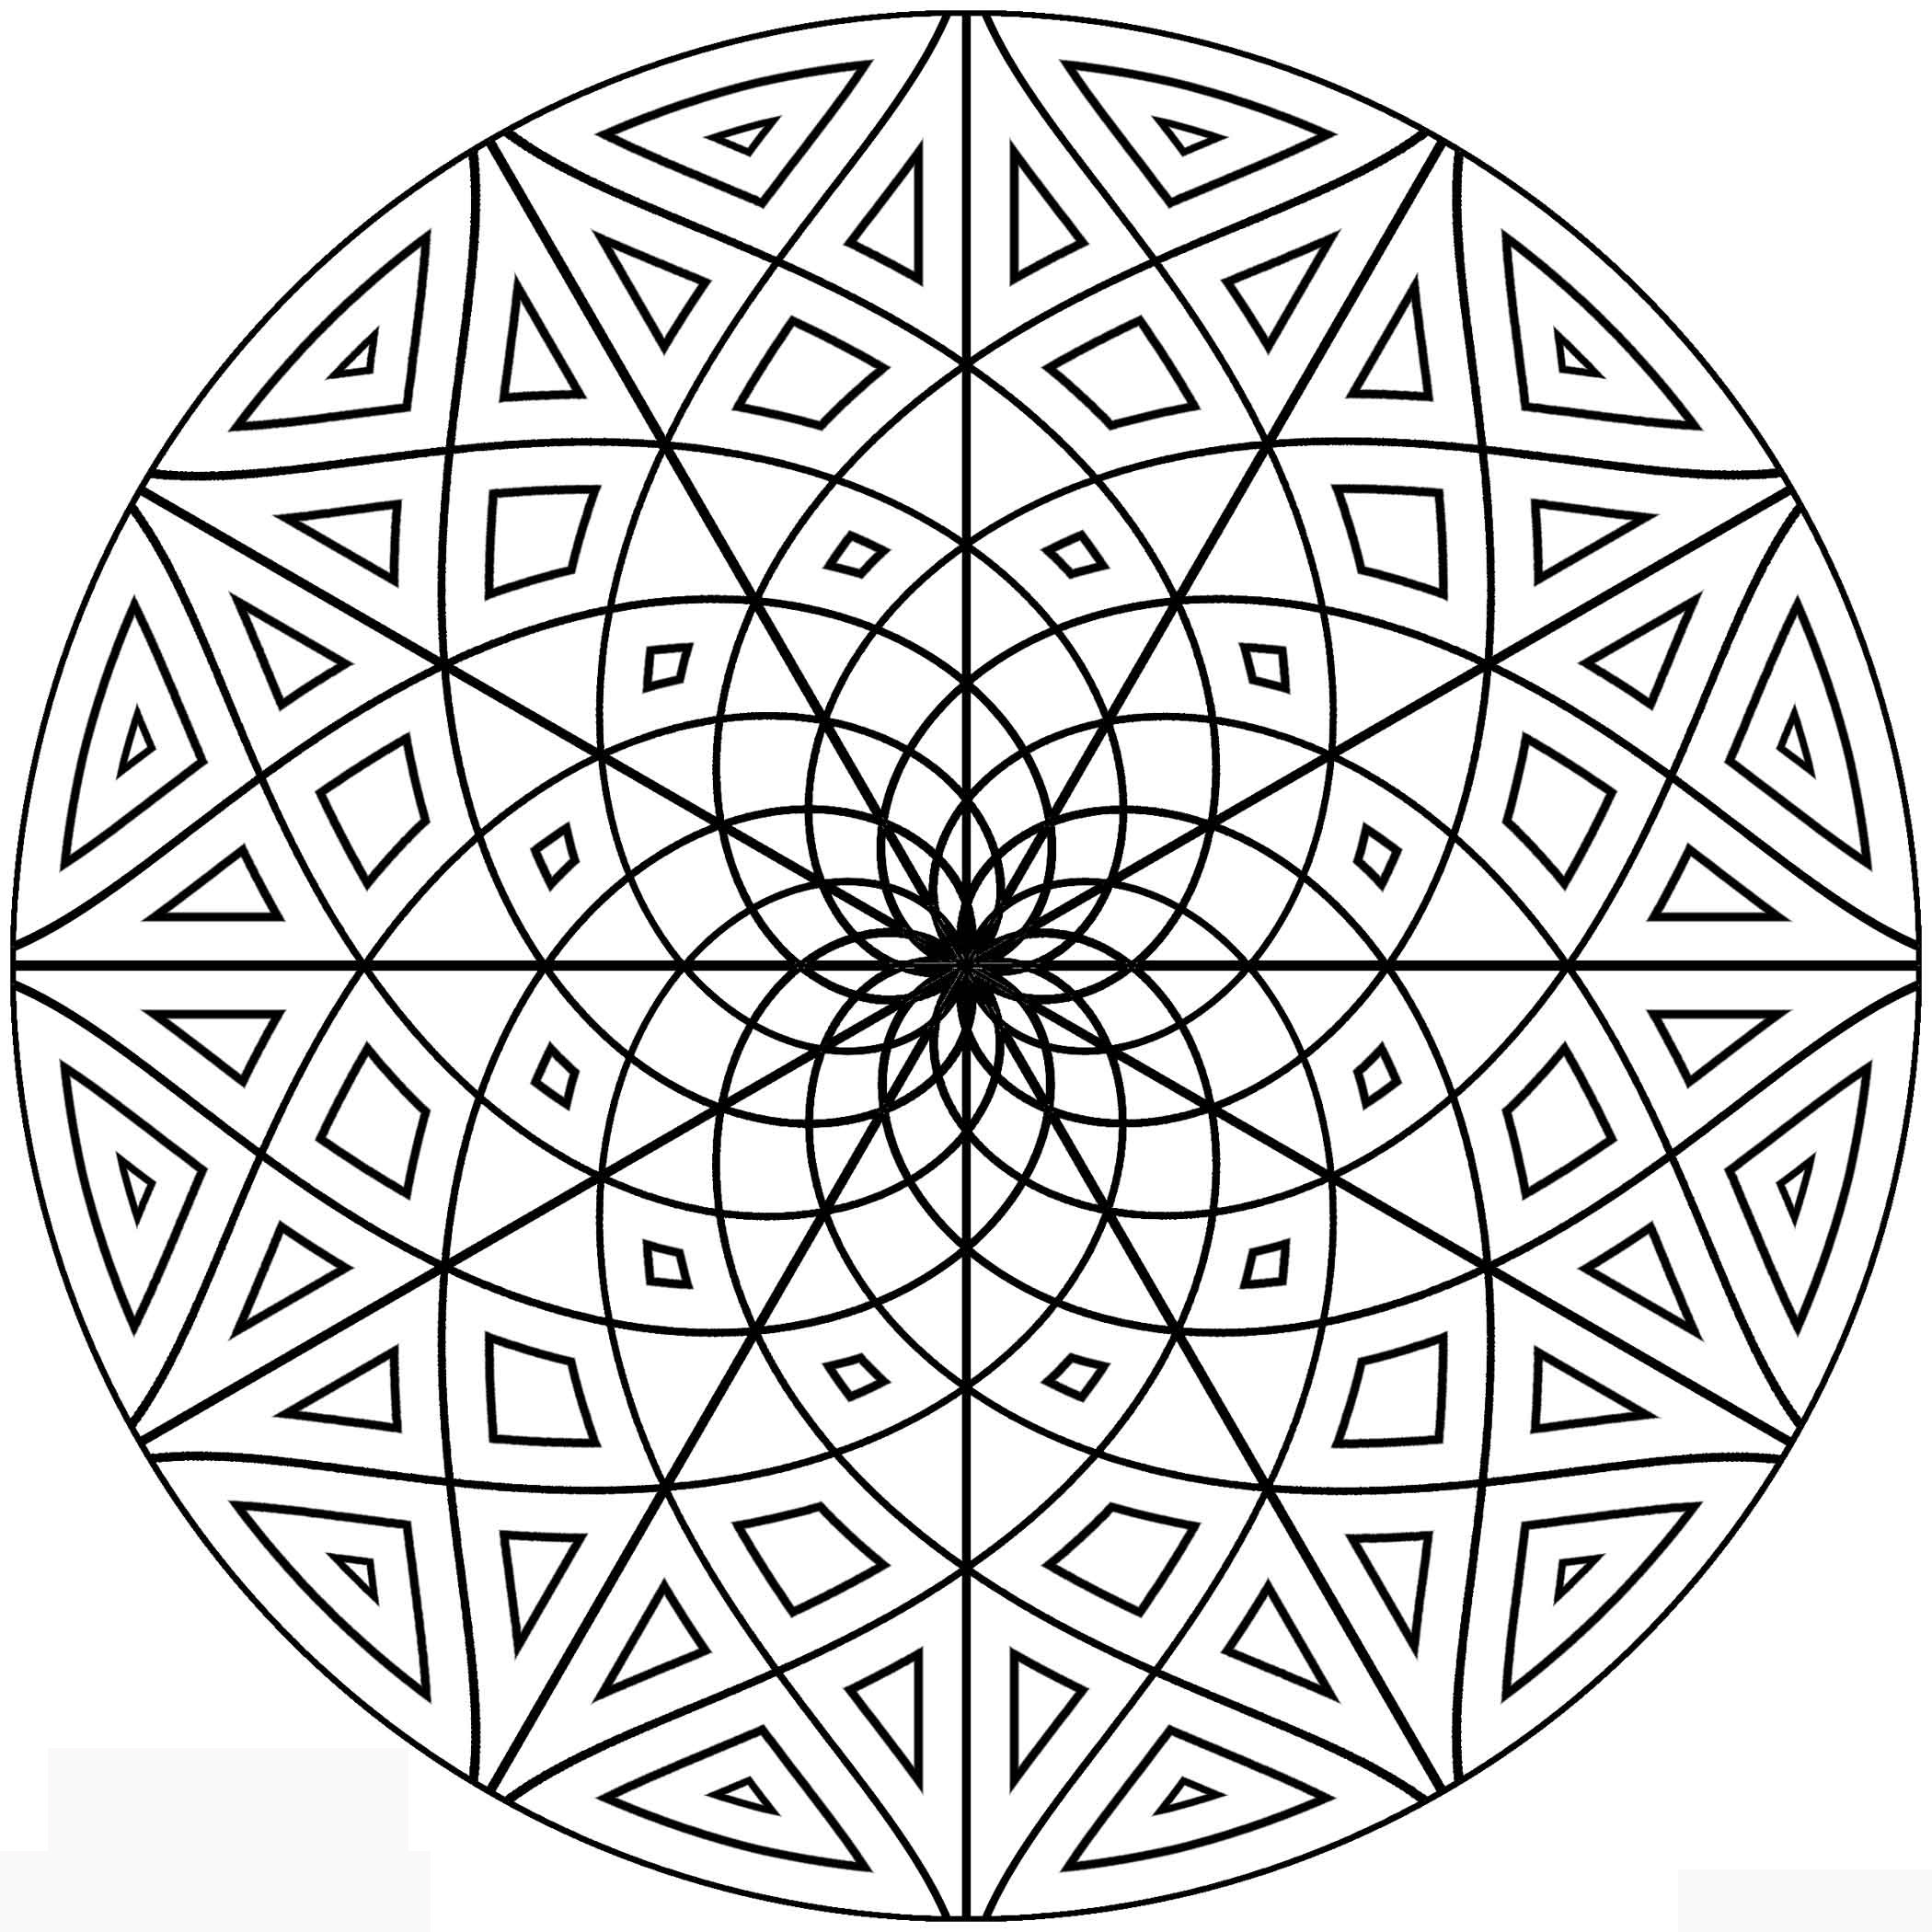 Free coloring pages - Free Geometric Coloring Pages